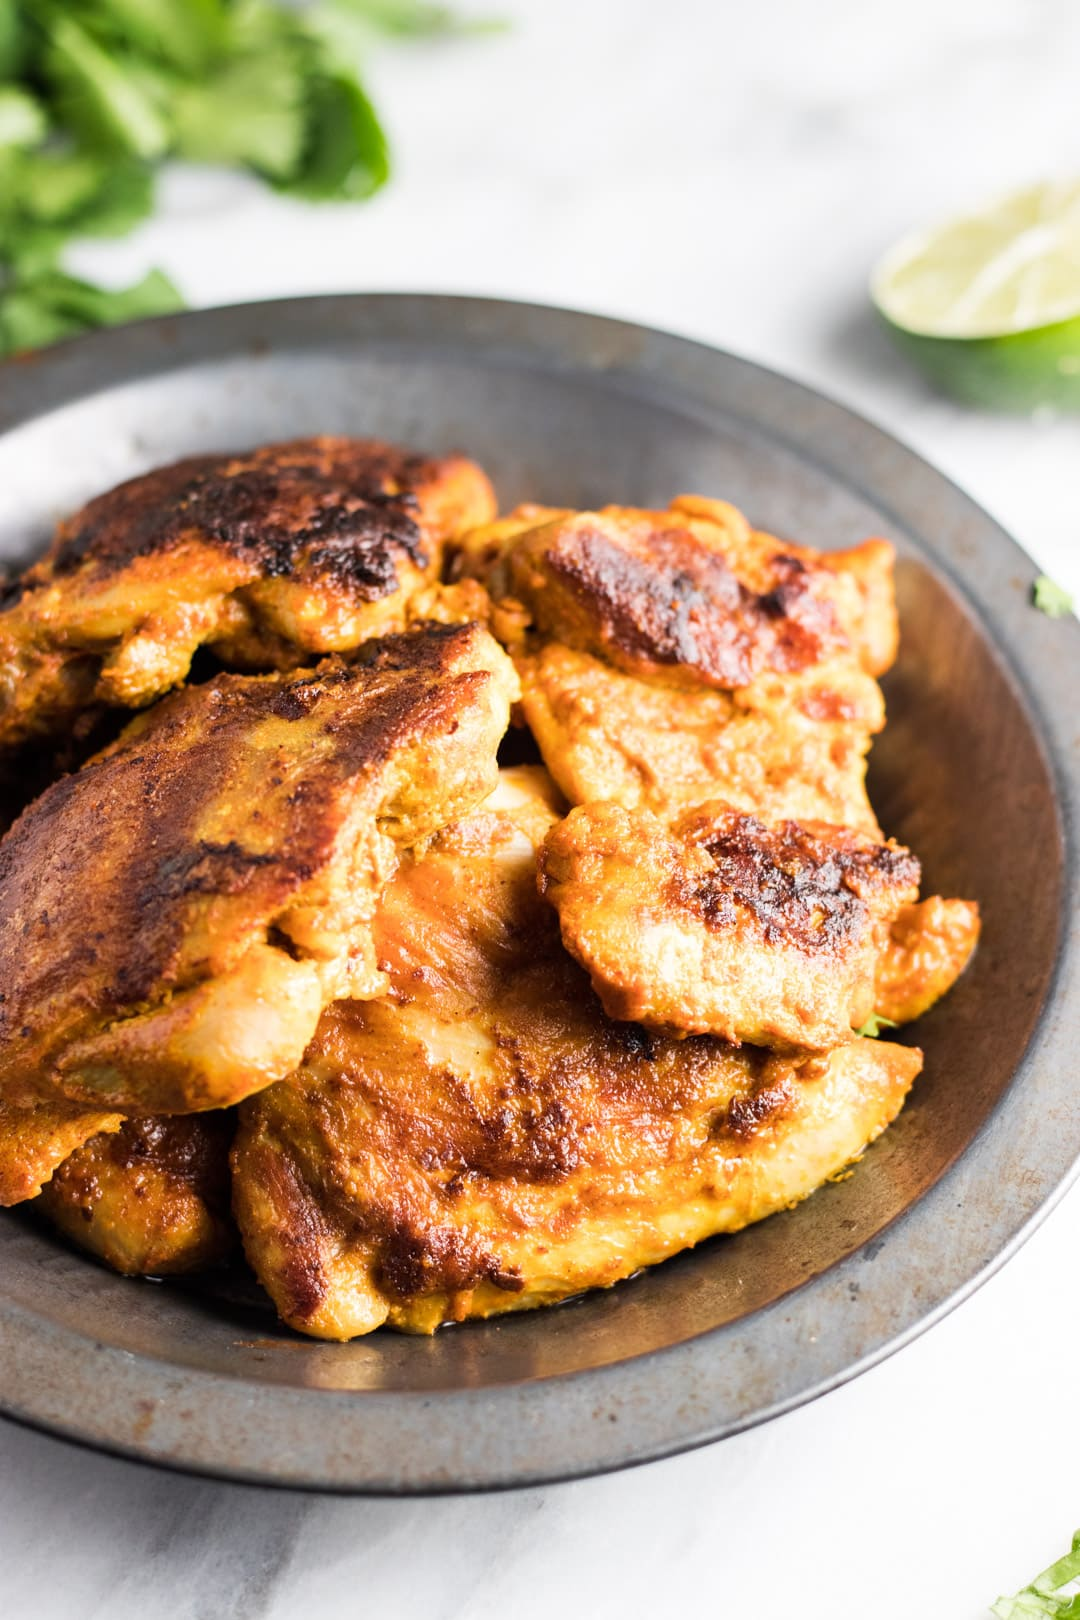 A close up of grilled tandoori-inspired chicken in a metal bowl.